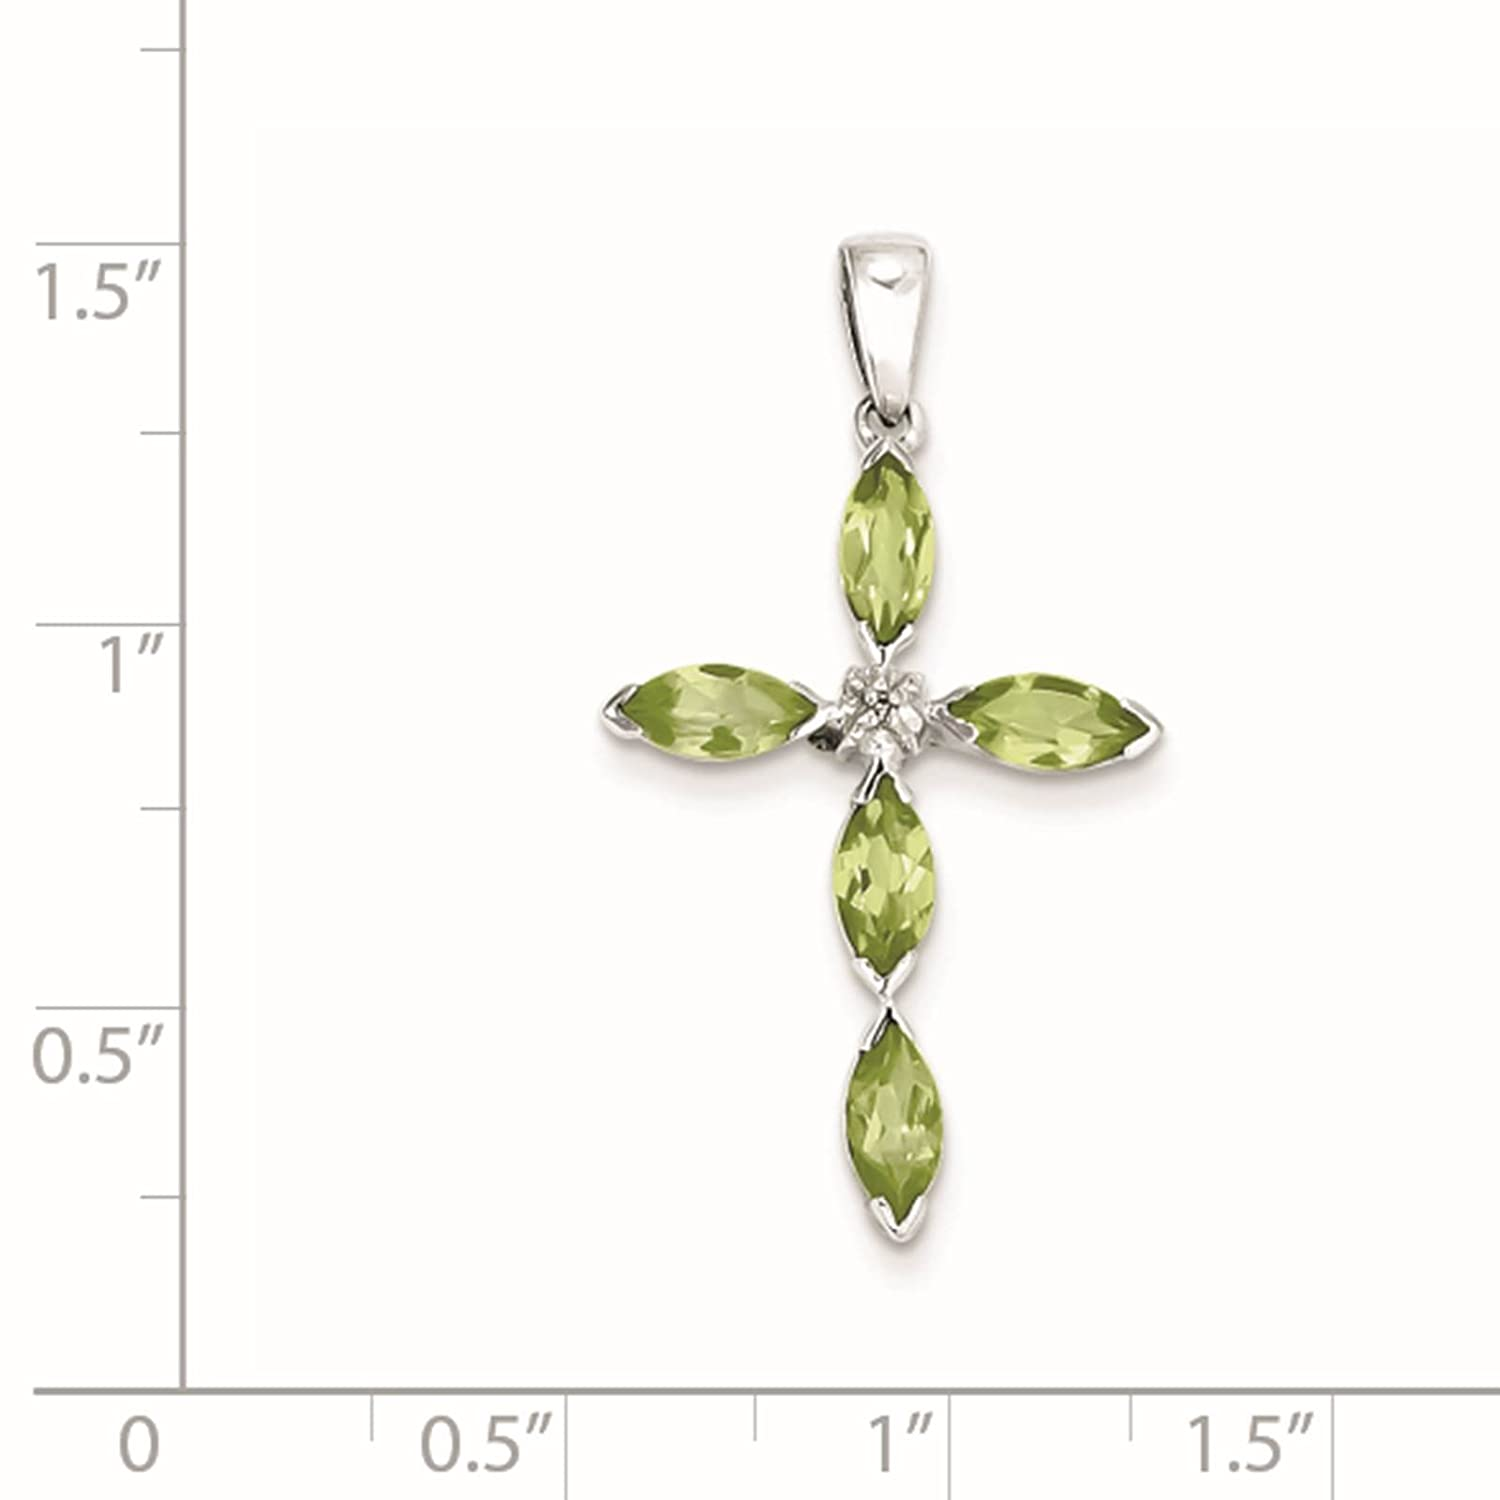 Bonyak Jewelry 18 Inch Rhodium Plated Necklace w// 4mm Faux-Pearl Beads and Maltese Cross